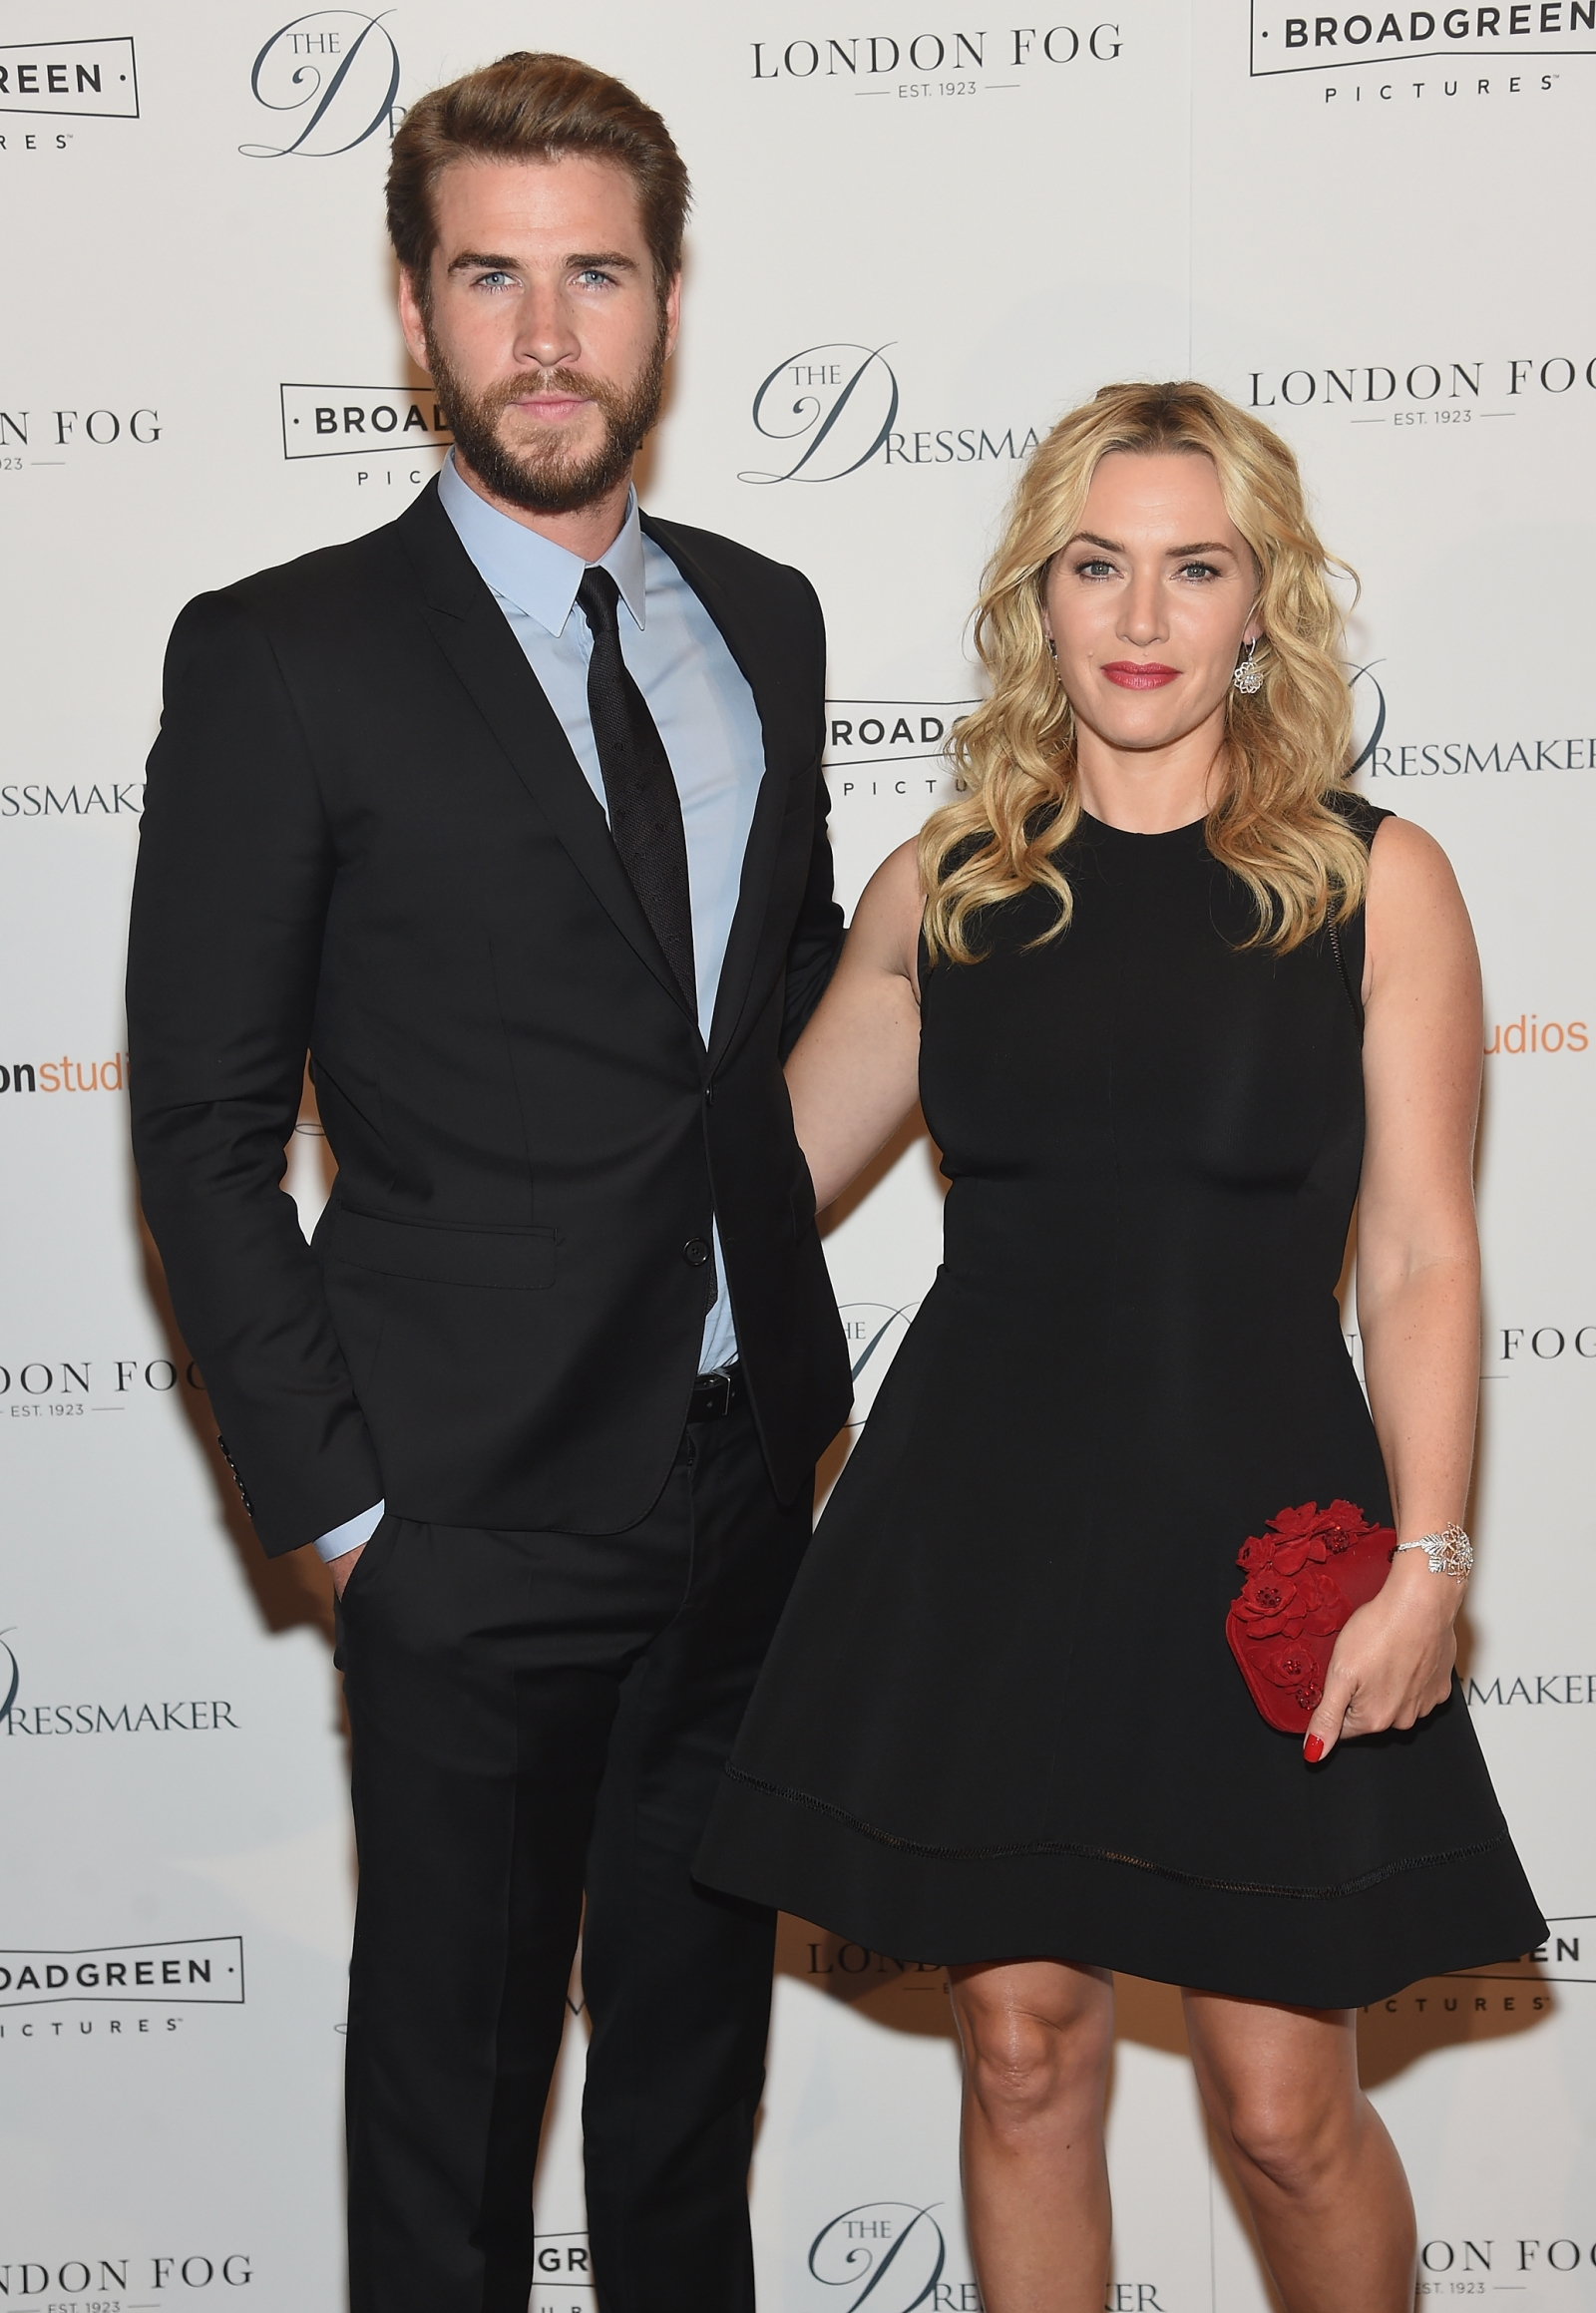 Liam Hemsworth and Kate Winslet